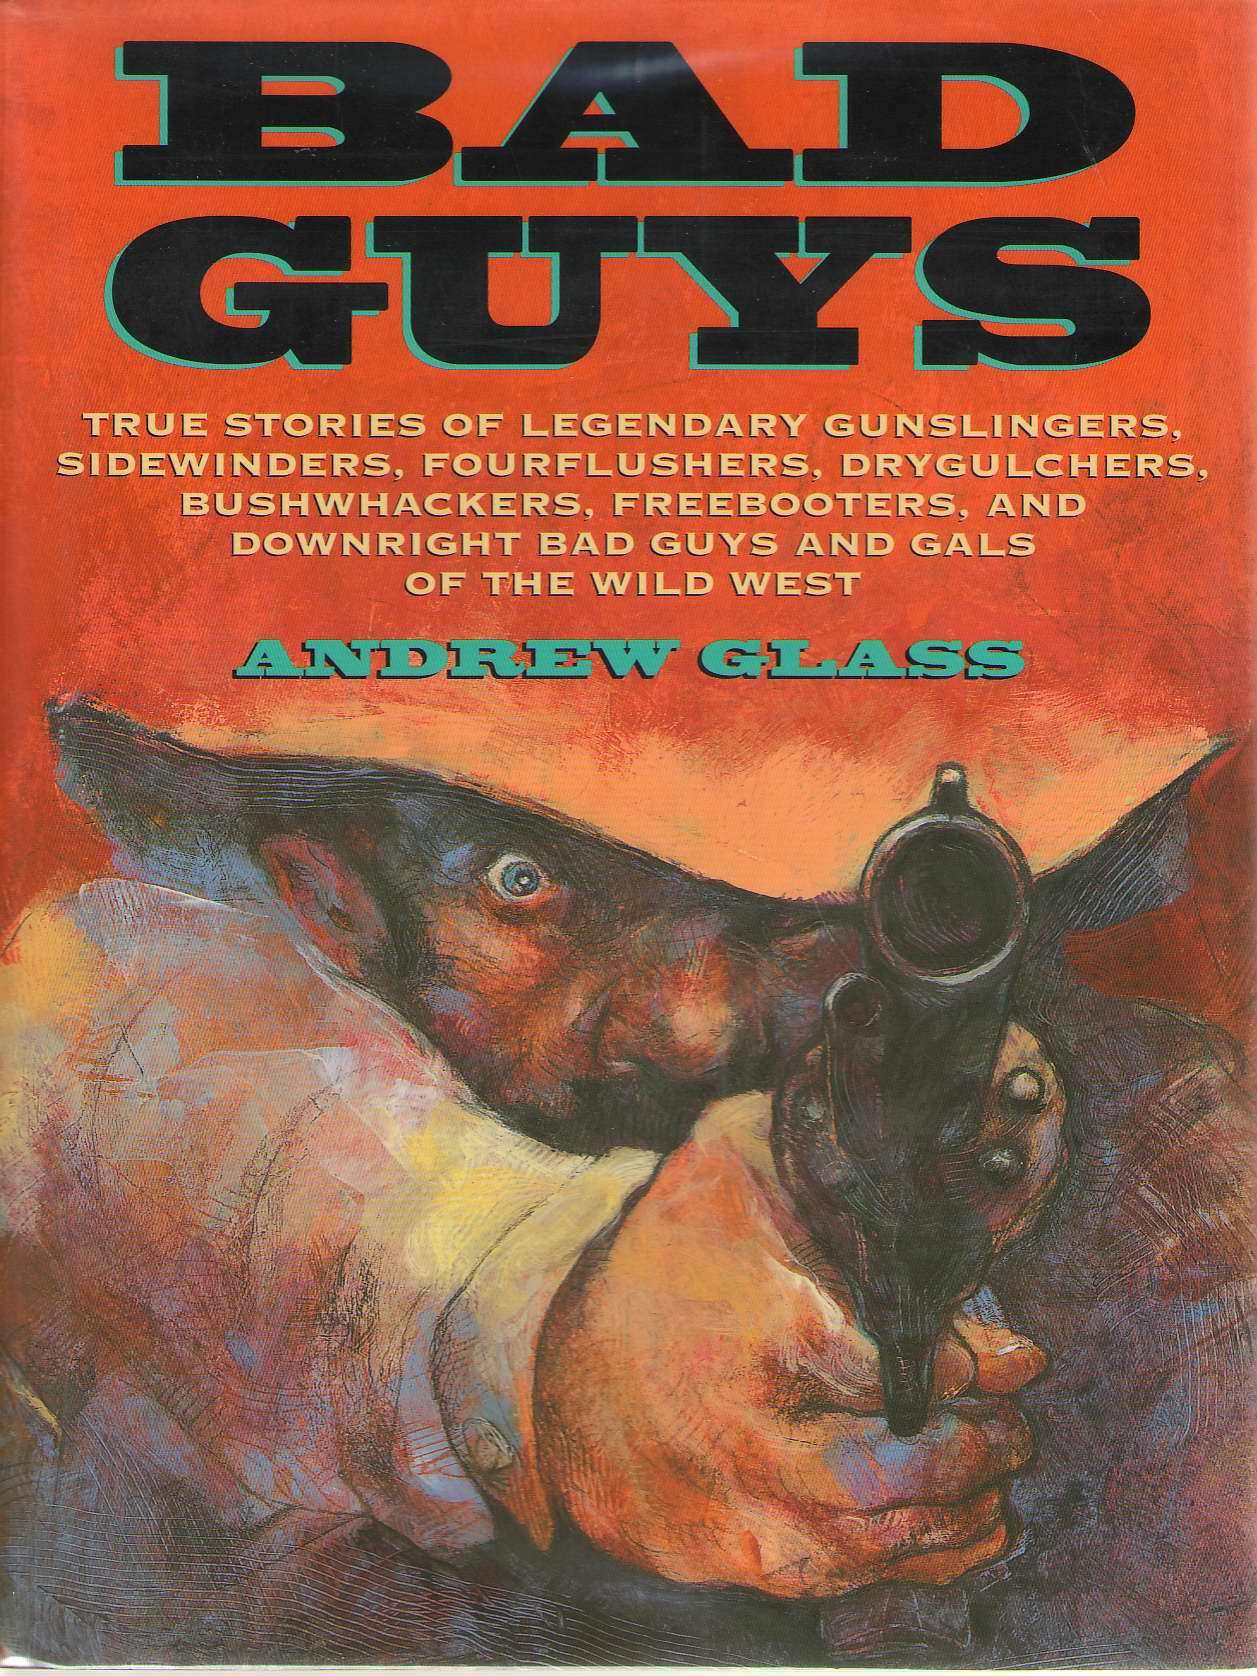 Image for Bad Guys  True Stories of Legendary Gunslingers, Sidewinders, Fourflushers, Drygulchers, Bushwhackers, Freebooters, and Downright Bad Guys and Gals of the Wild West